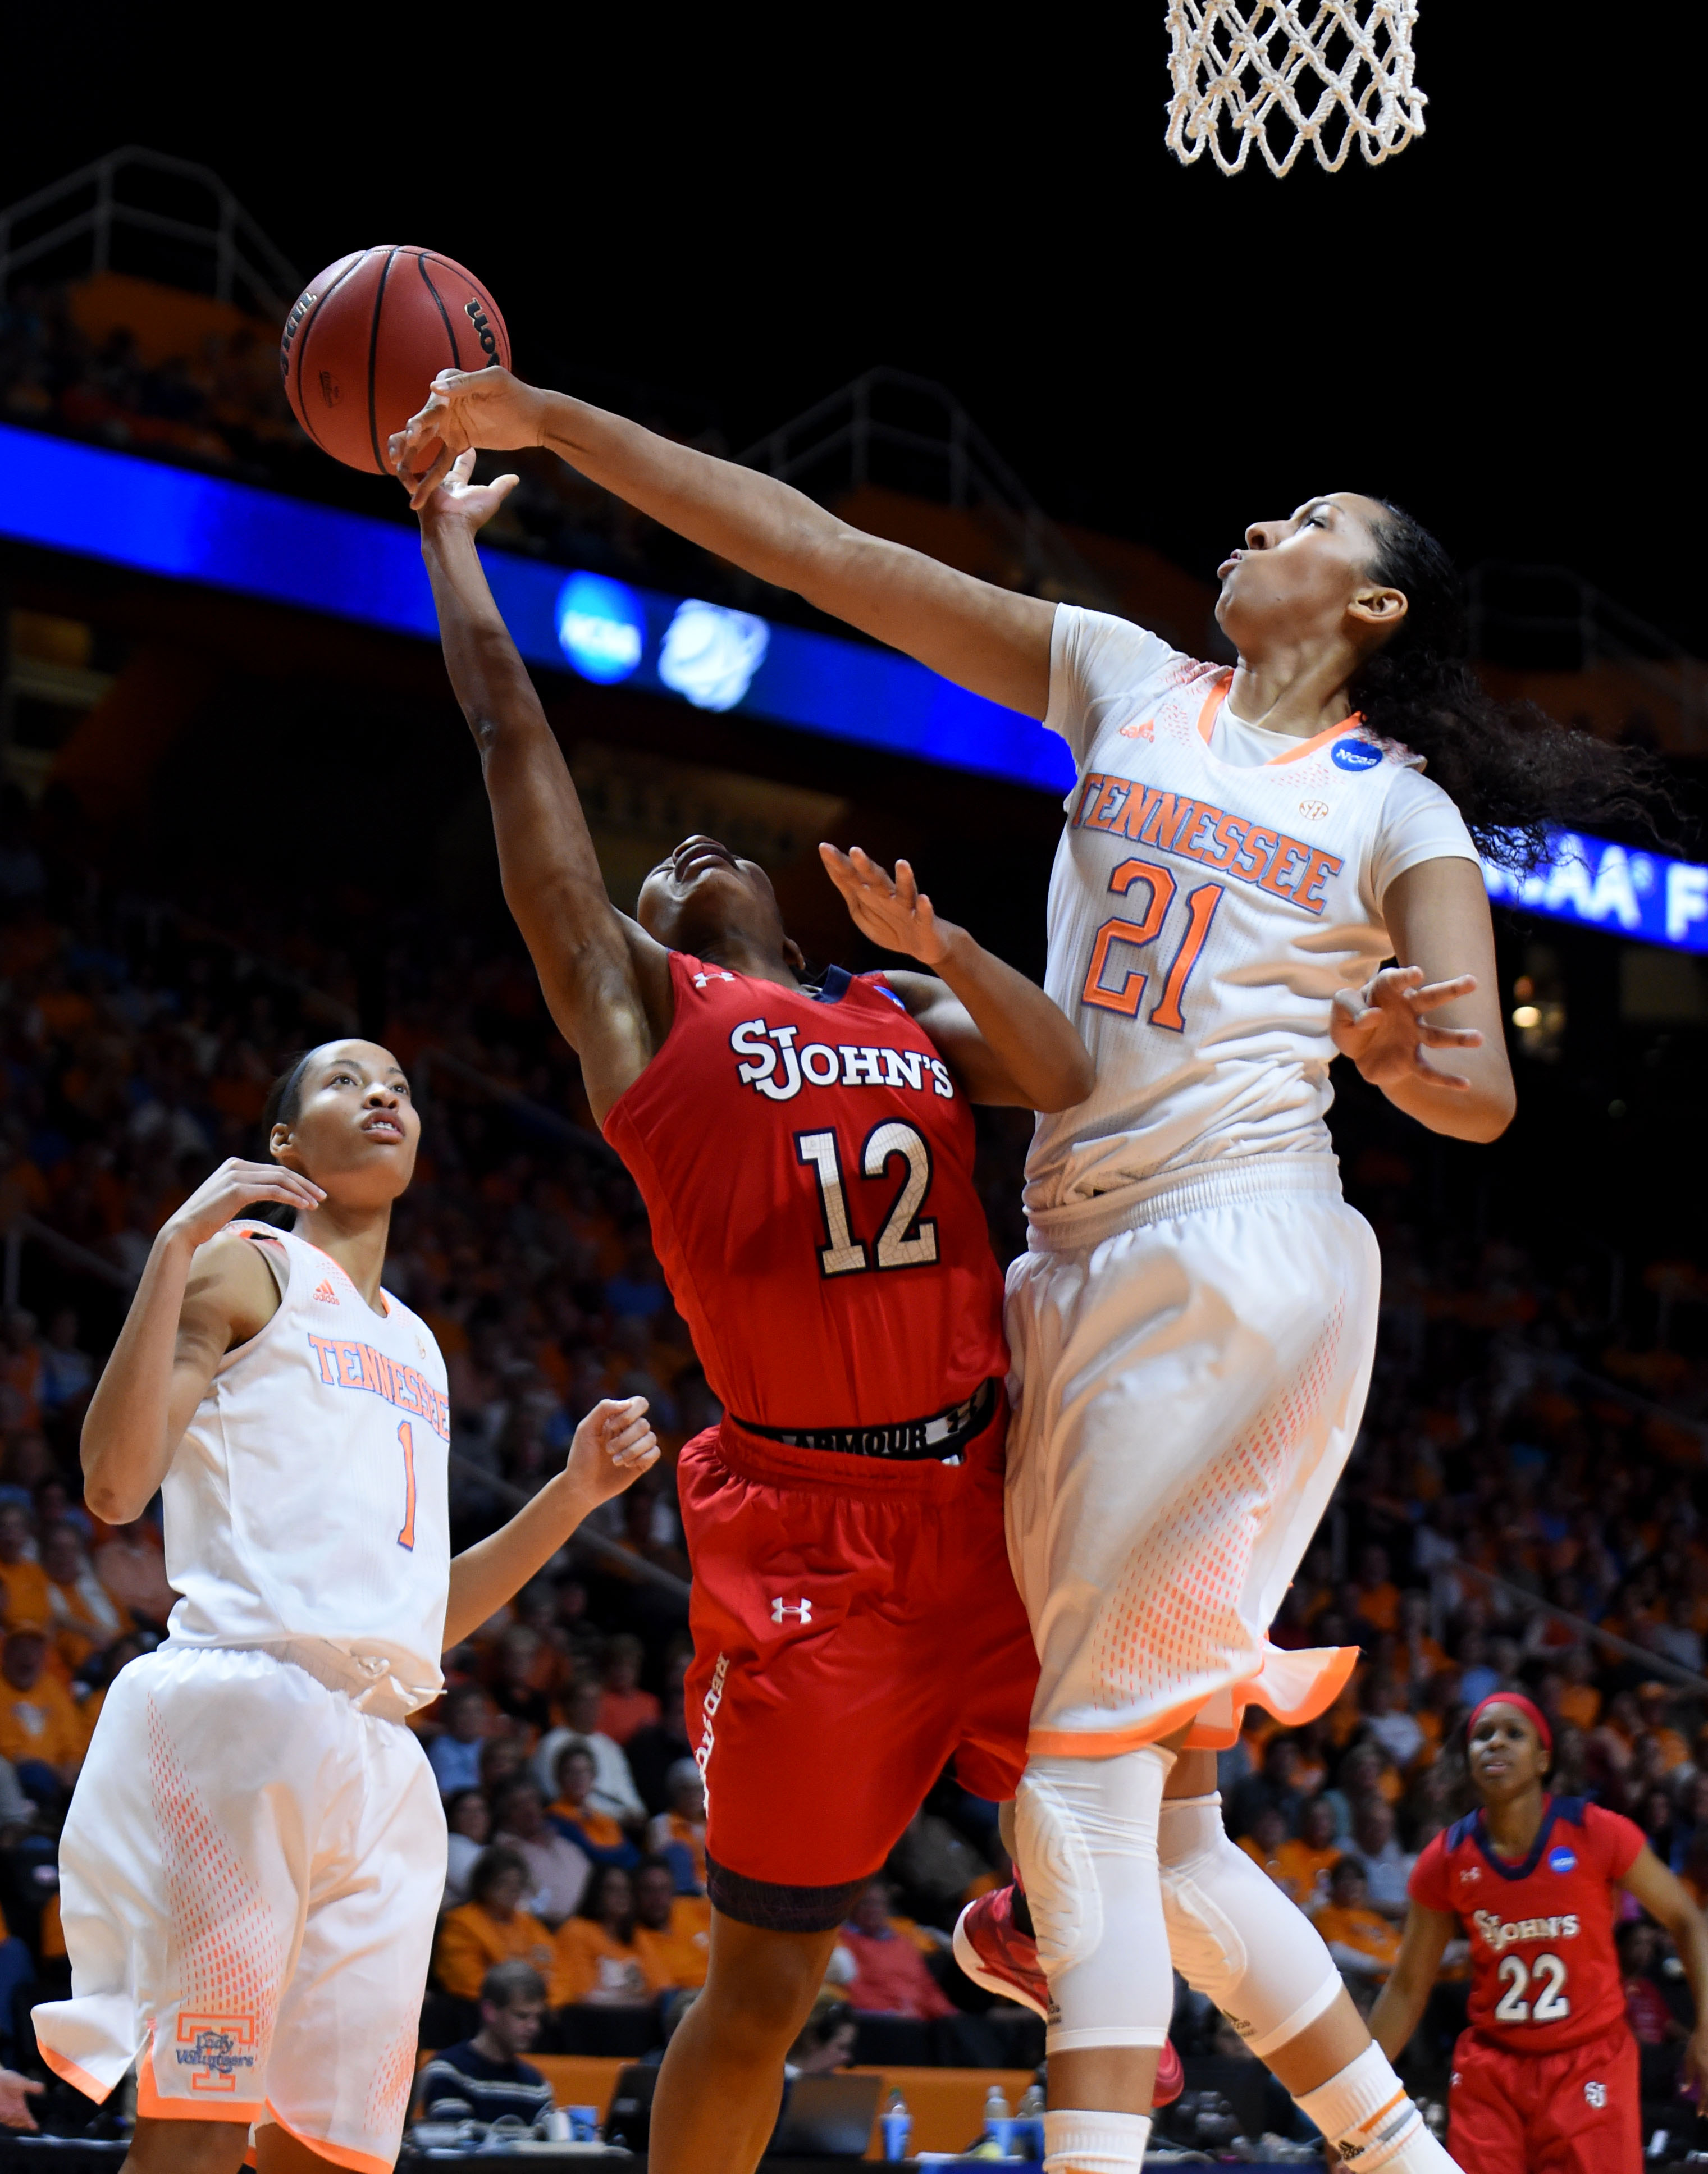 In this March 24, 2014, photo, Tennessee center Mercedes Russell, right, blocks a shot by St. John's guard Briana Brown during the NCAA college women's basketball tournament in Knoxville, Tenn. After helping the United States win a gold medal at last mont